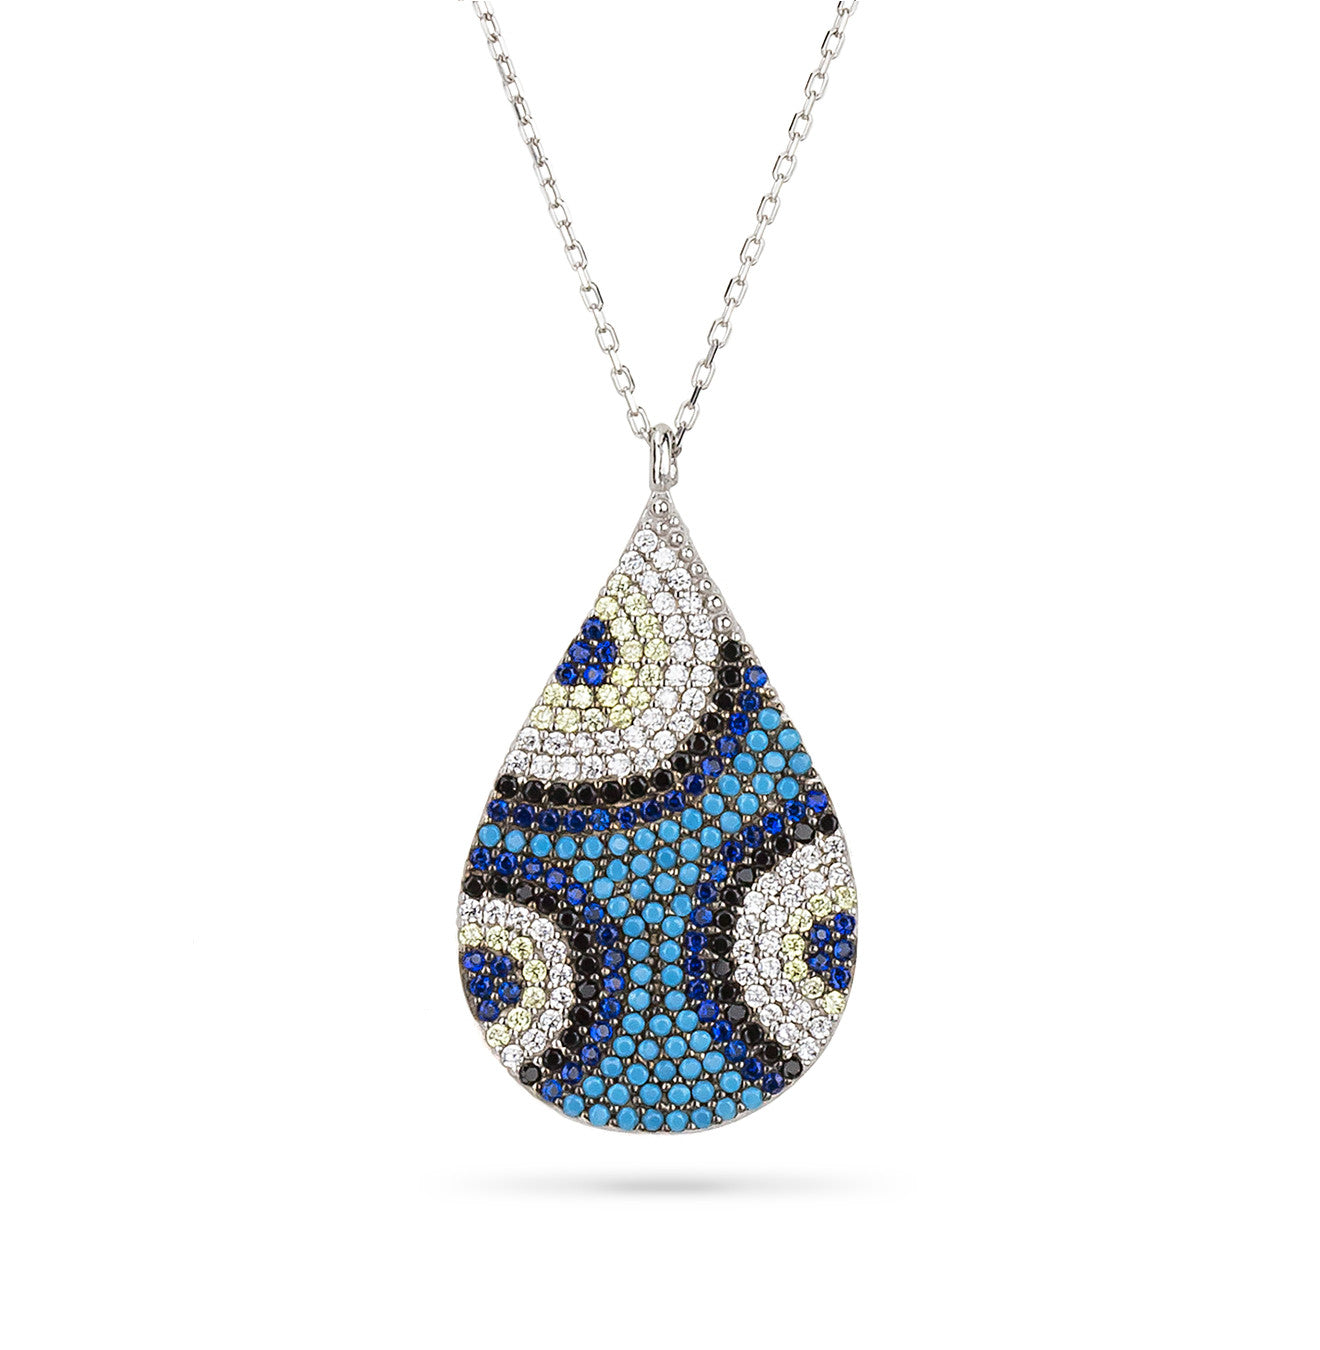 Evil Eye Turkish Tear Drop Shaped Pendant Silver 925